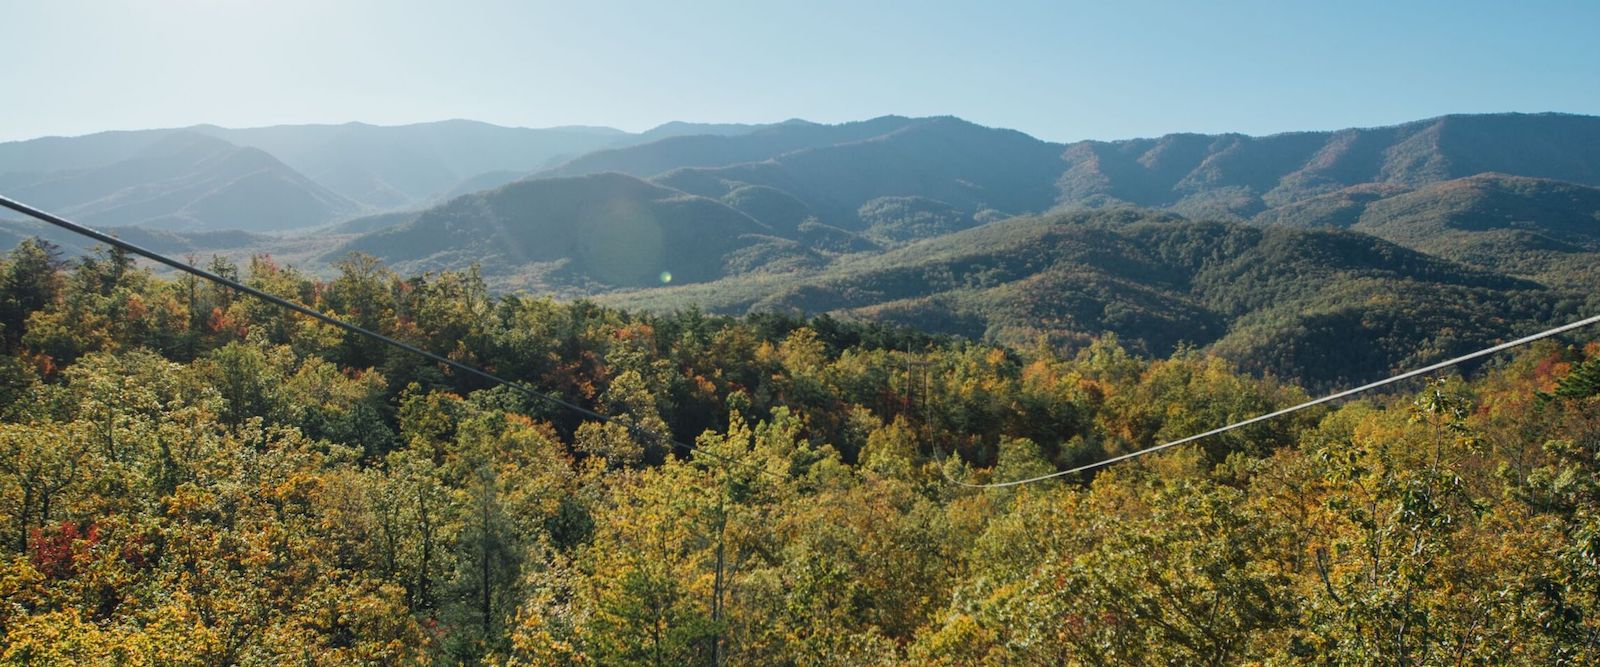 5 Things You Didn't Know About the Great Smoky Mountains National Park